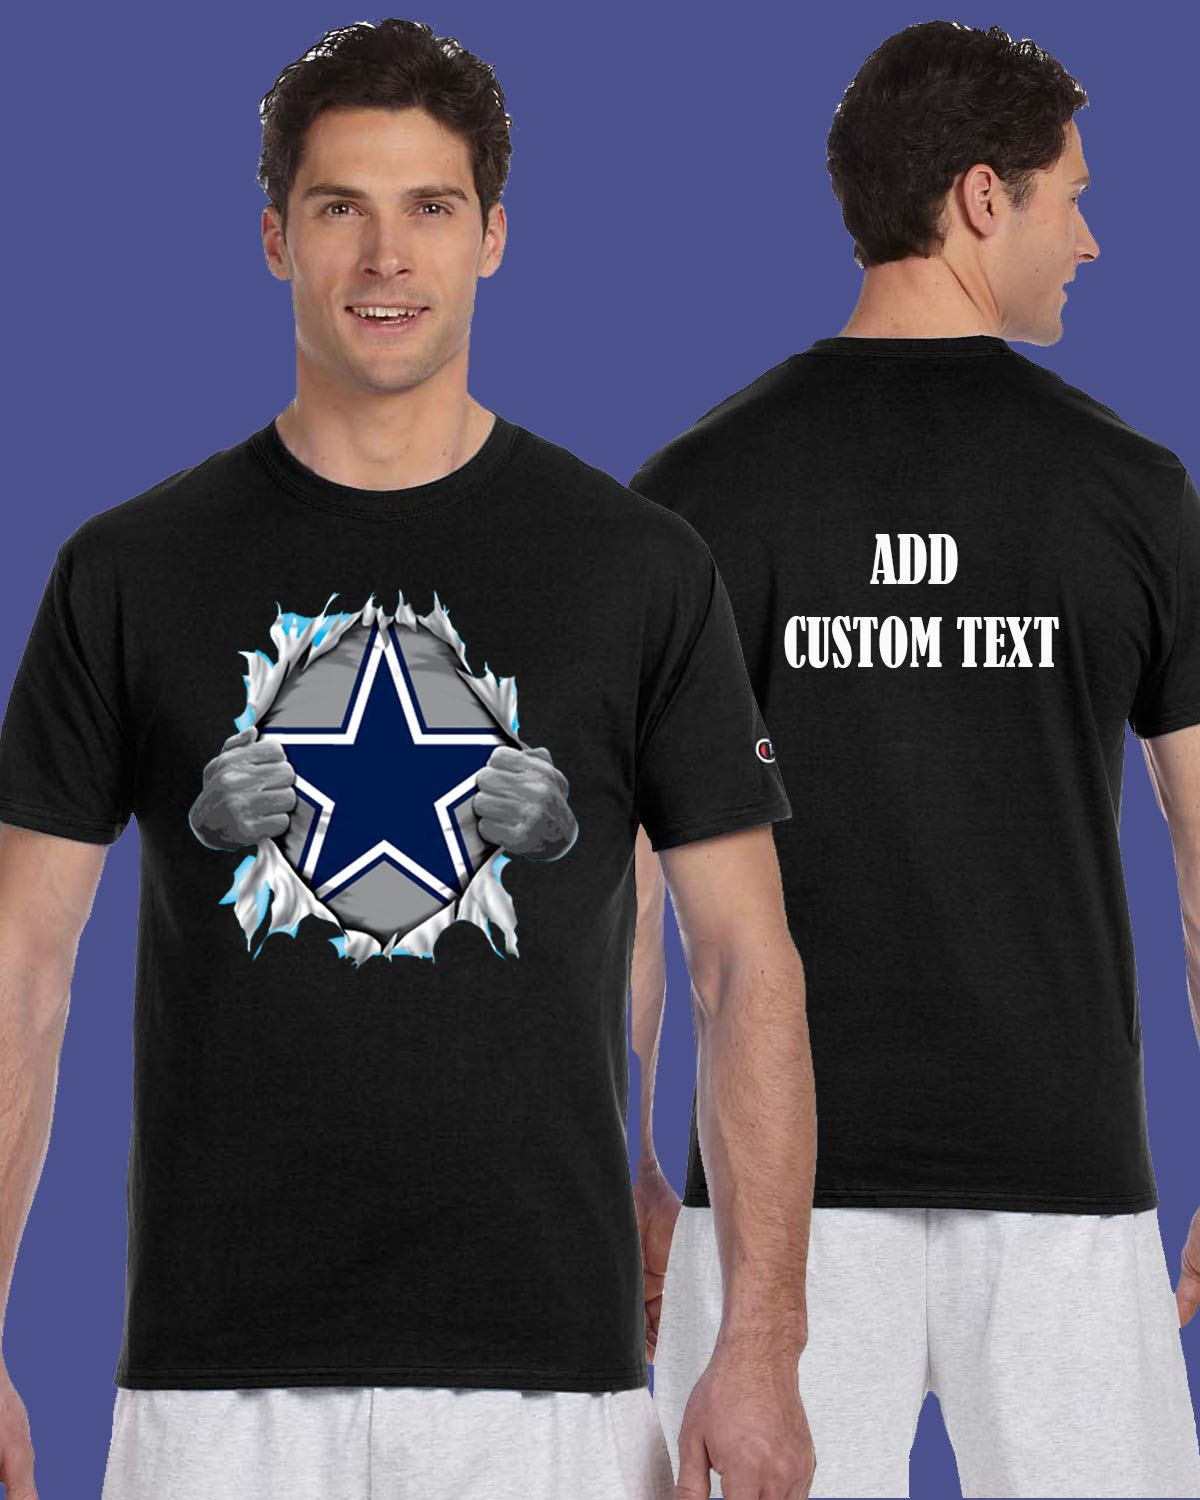 888aa7b4 Dallas Cowboys Tearing Throught Chest Superman T Shirt Add ...